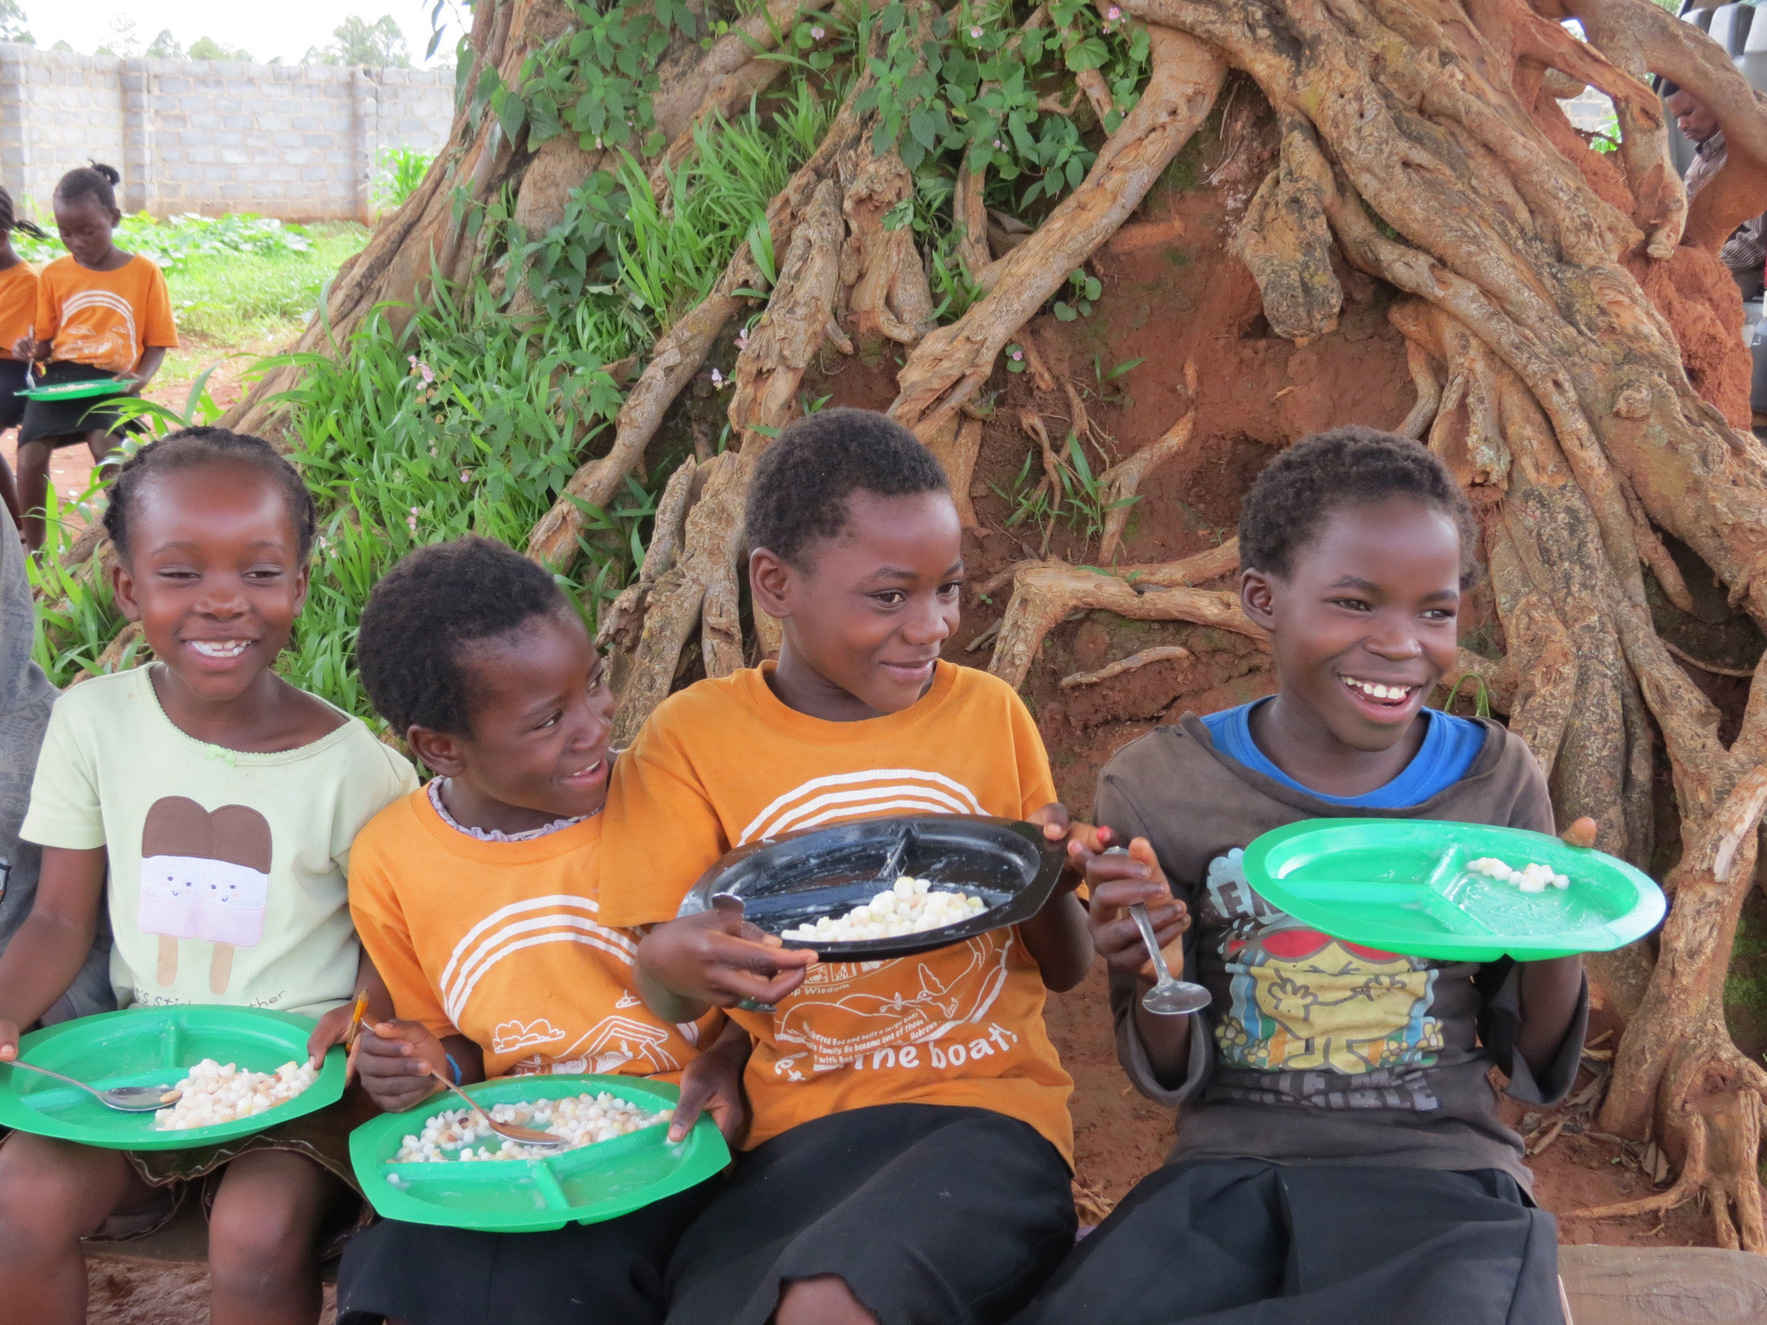 Feed the CHILDREN of WISDOM image